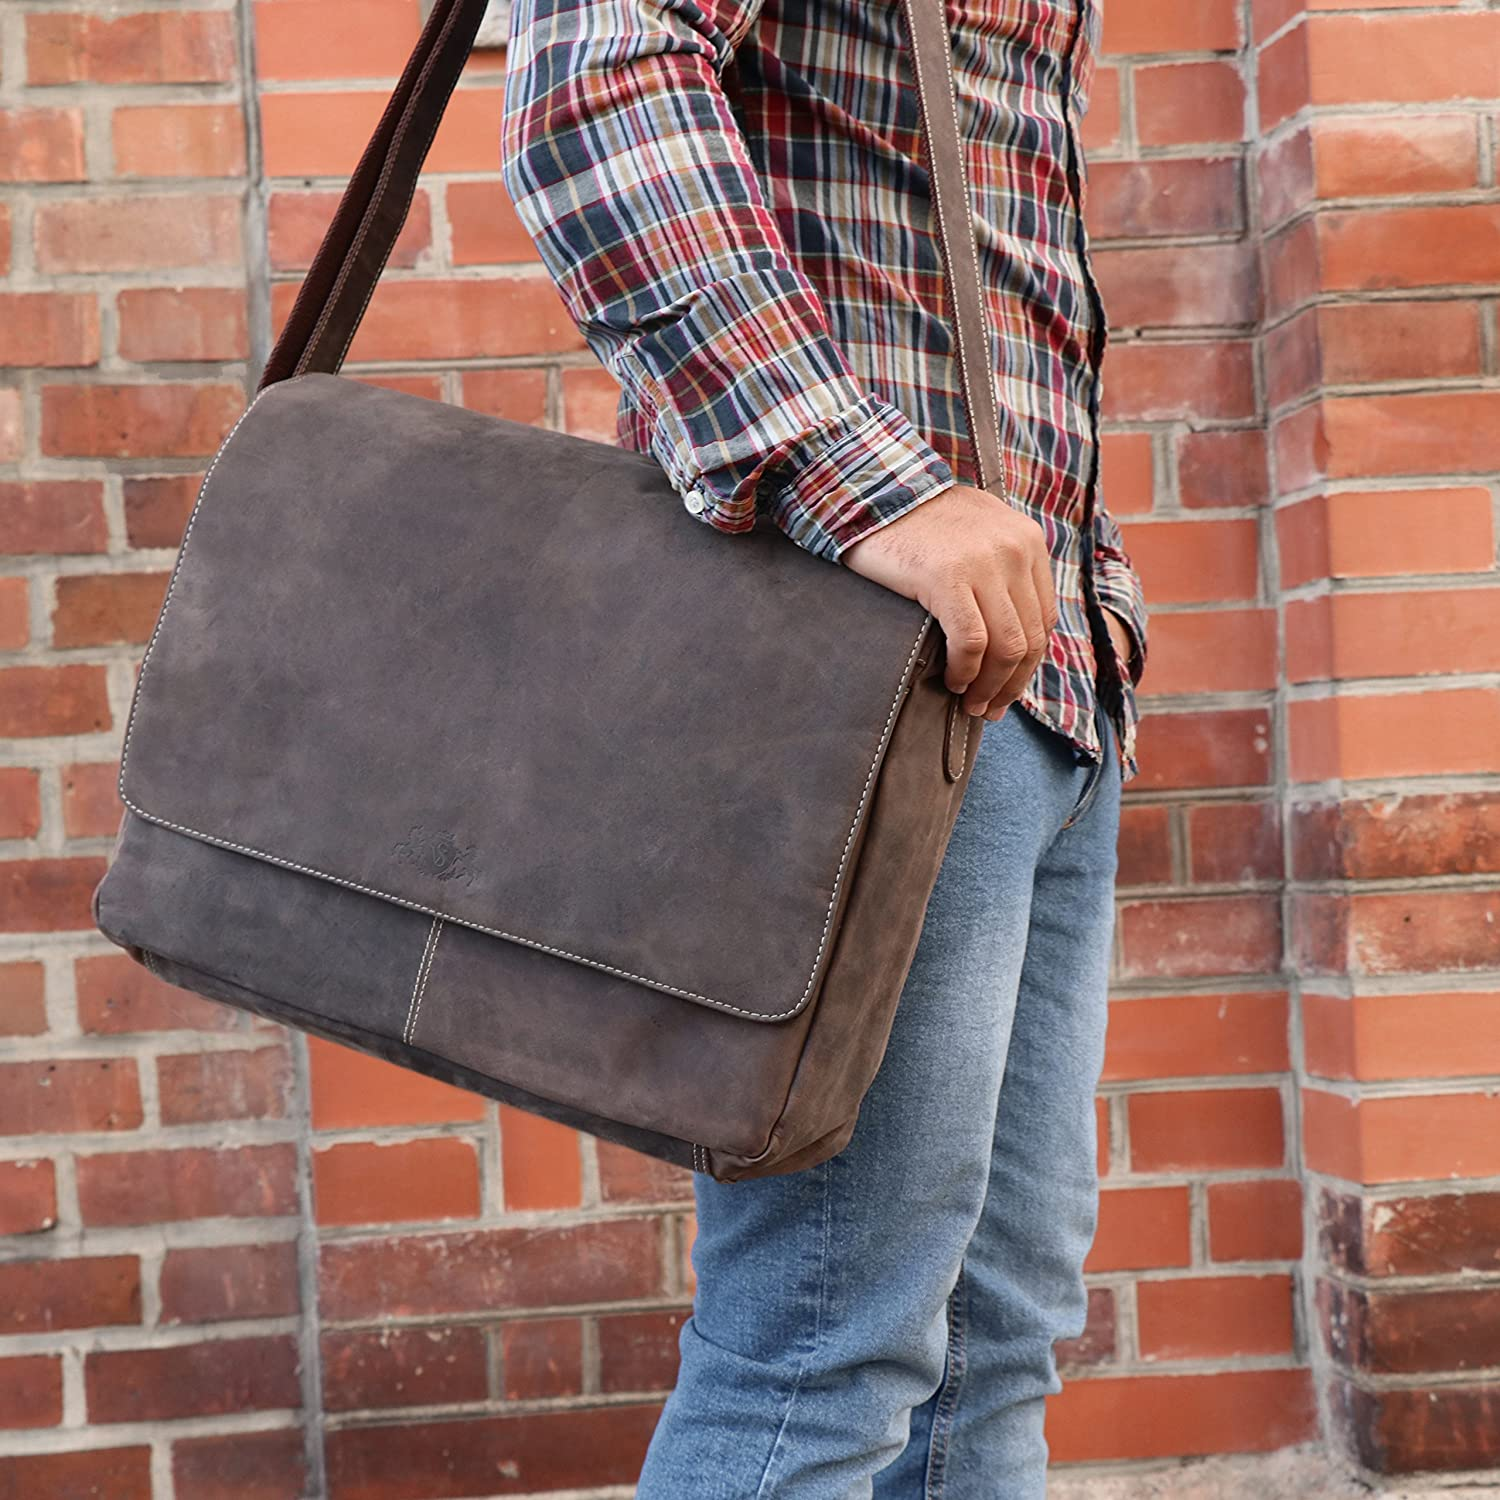 "SID & VAIN Messenger Bag Spencer XL Laptop Bag Real Leather 15"" Laptop Business Briefcase Leather Bag Women and Men Brown Vintage-brown"